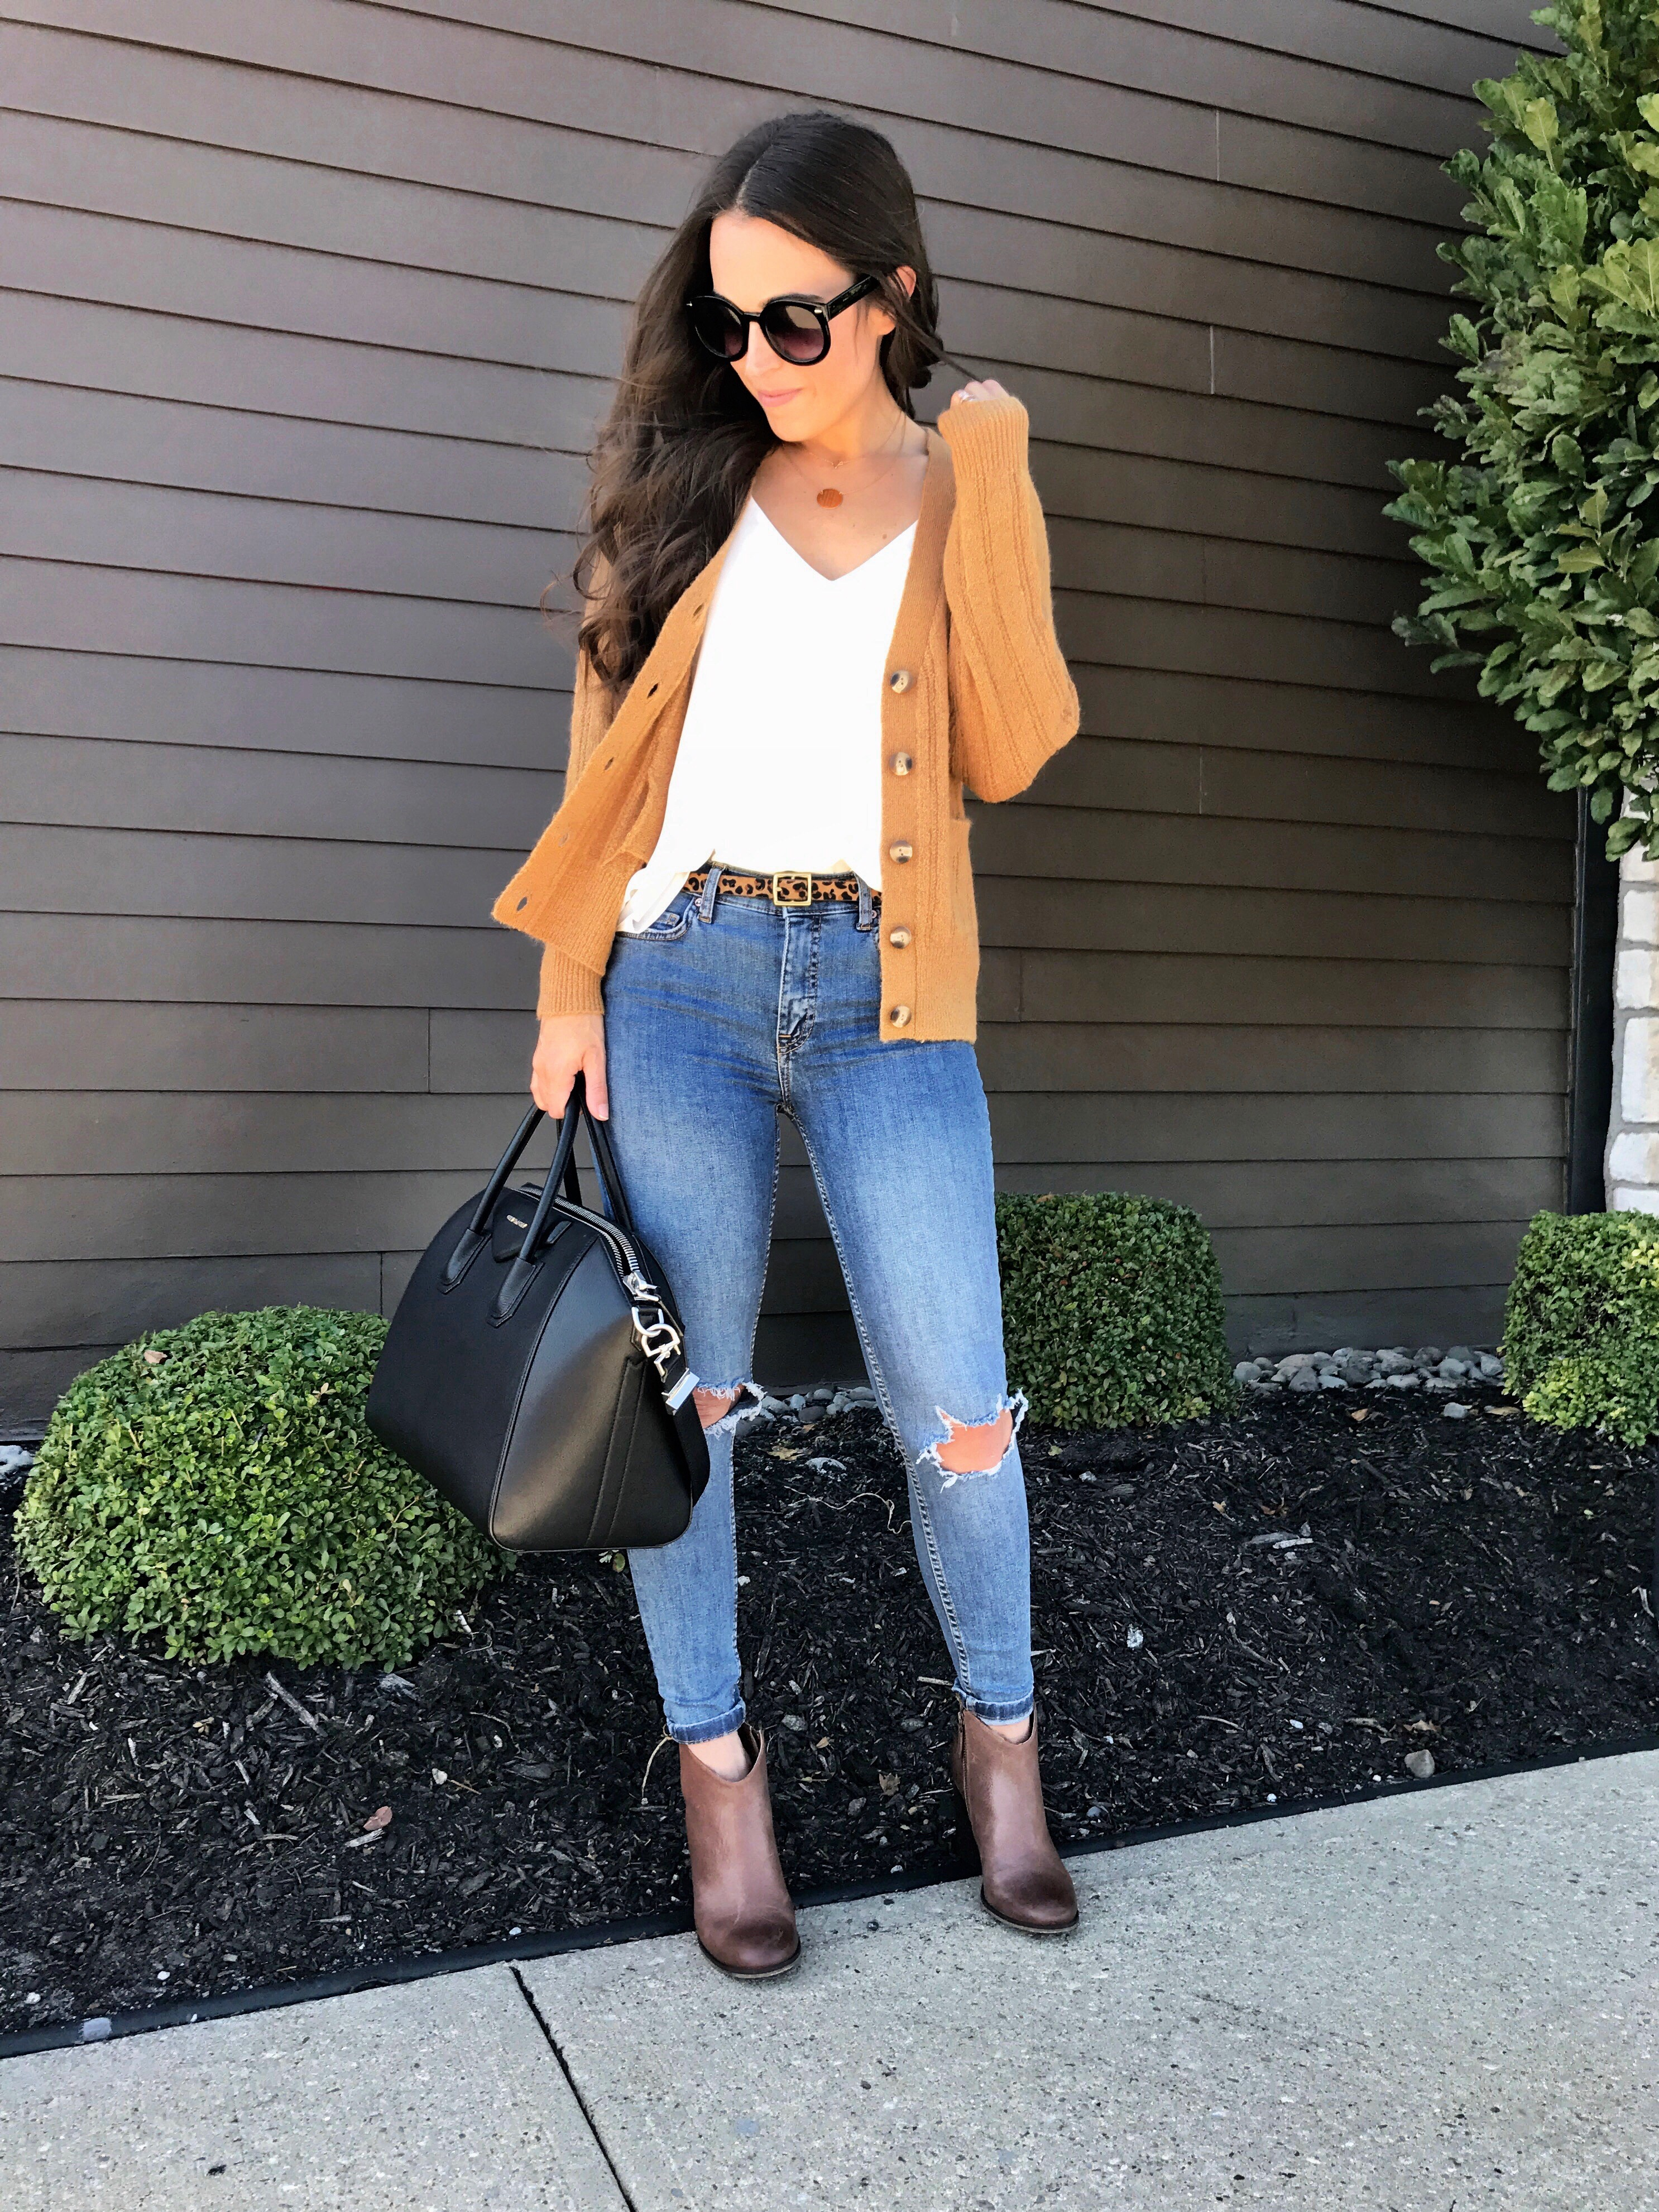 How To Wear Mustard Yellow This Fall: 15 Ideas